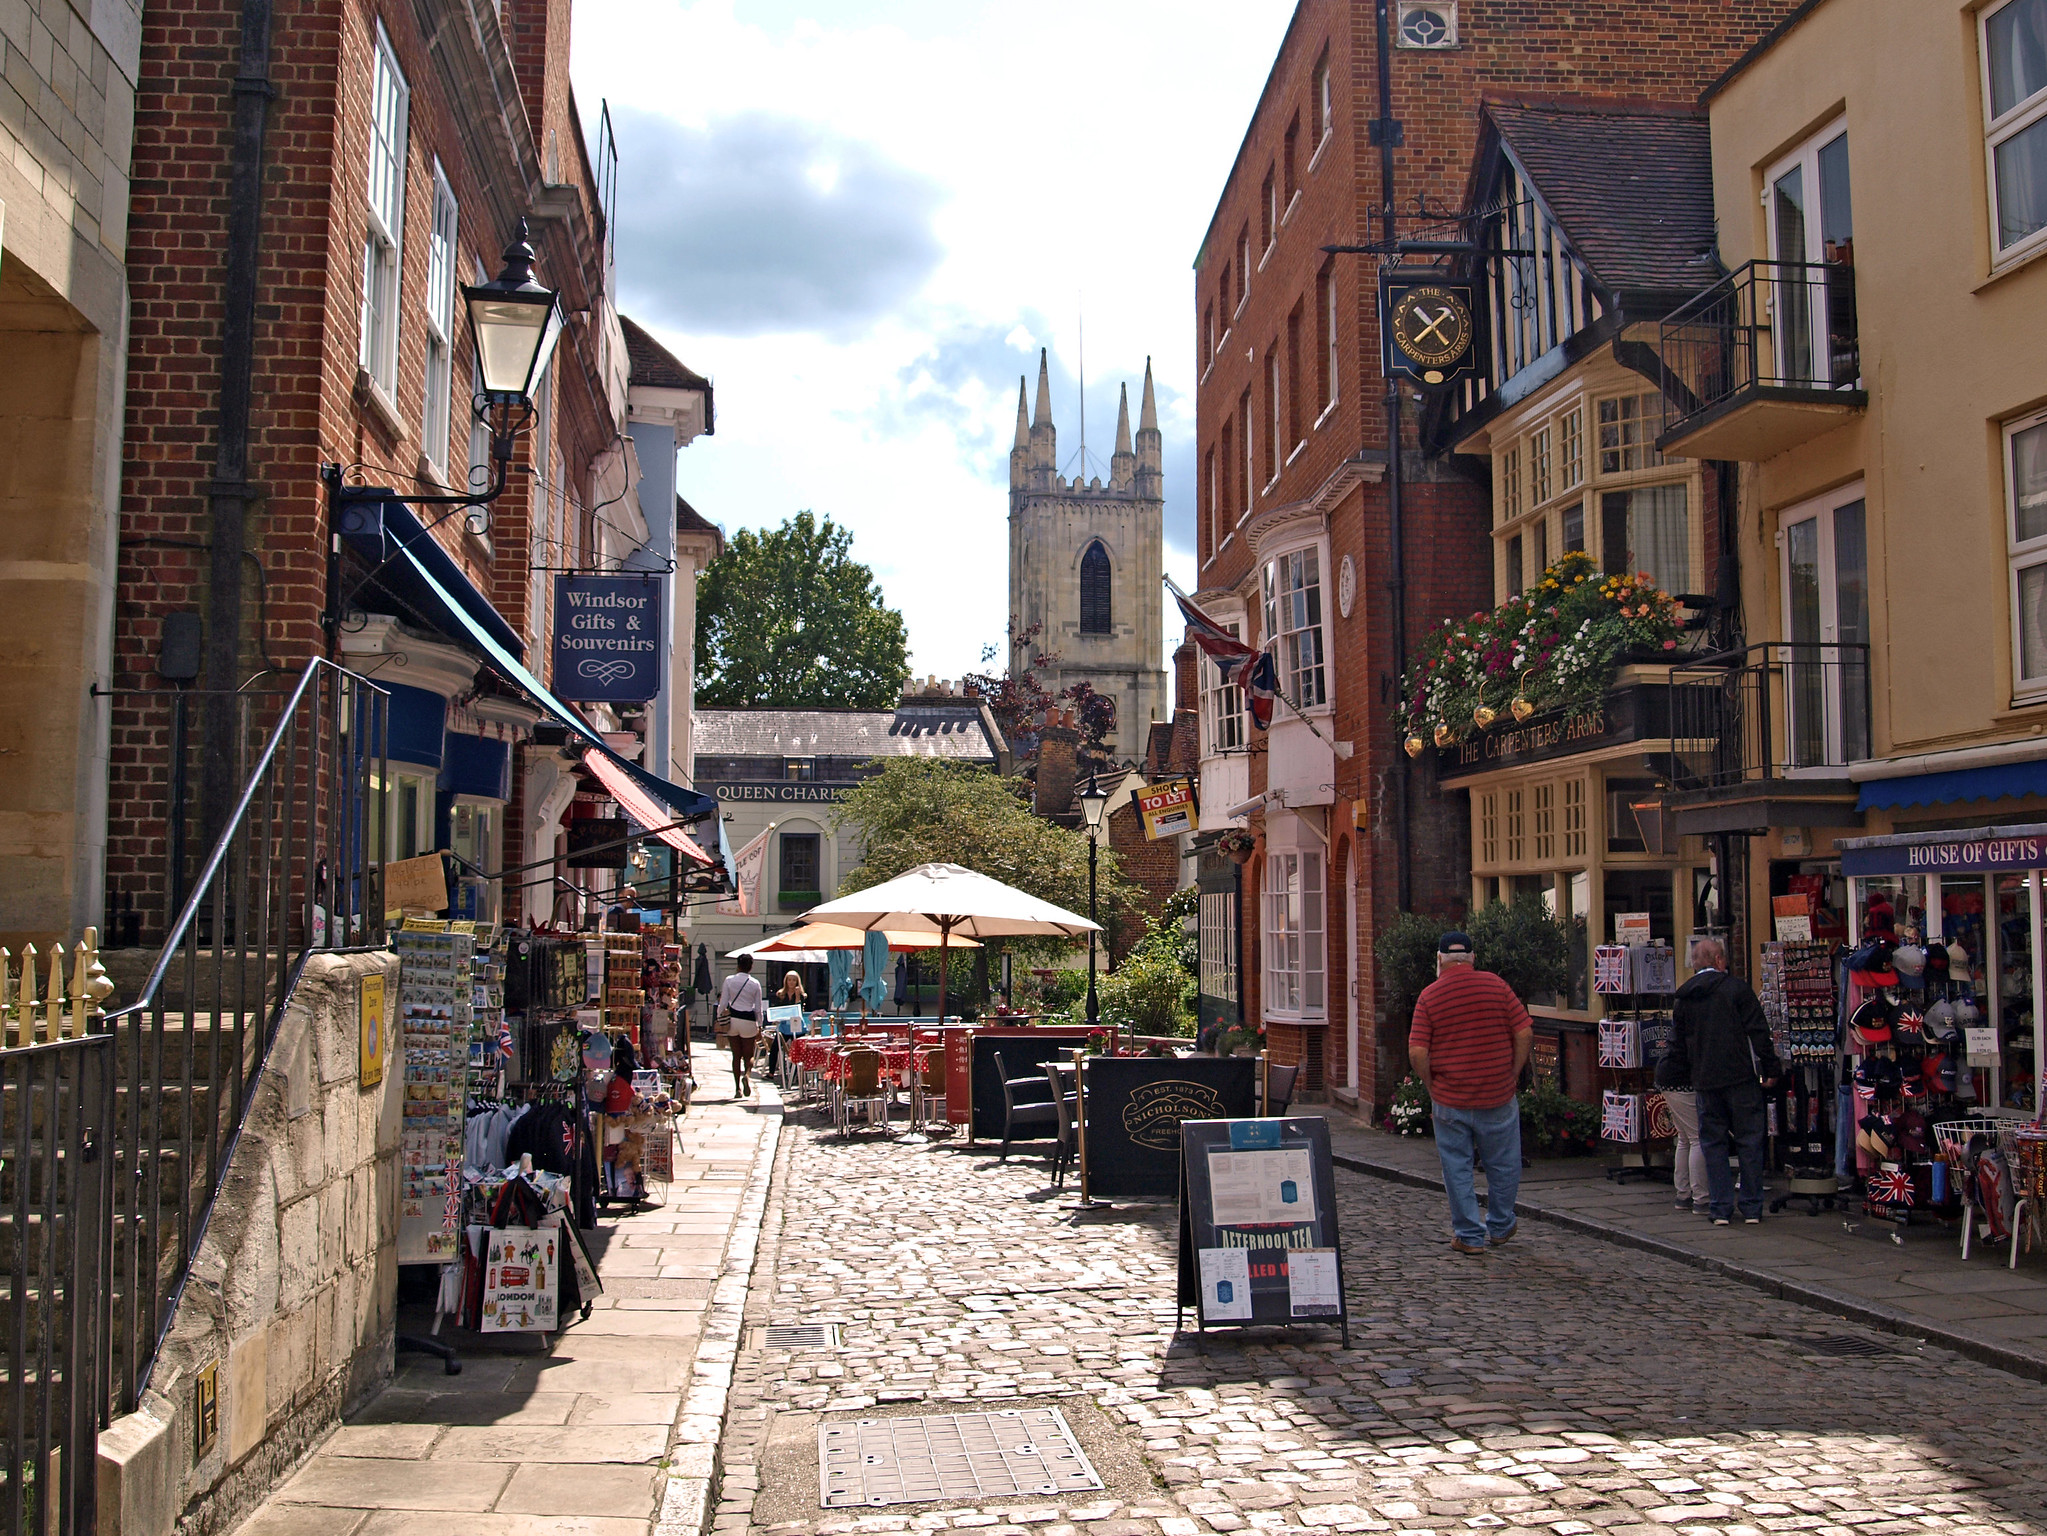 Church Street in the heart of Windsor, Berkshire by Andrew S Brown.jpg